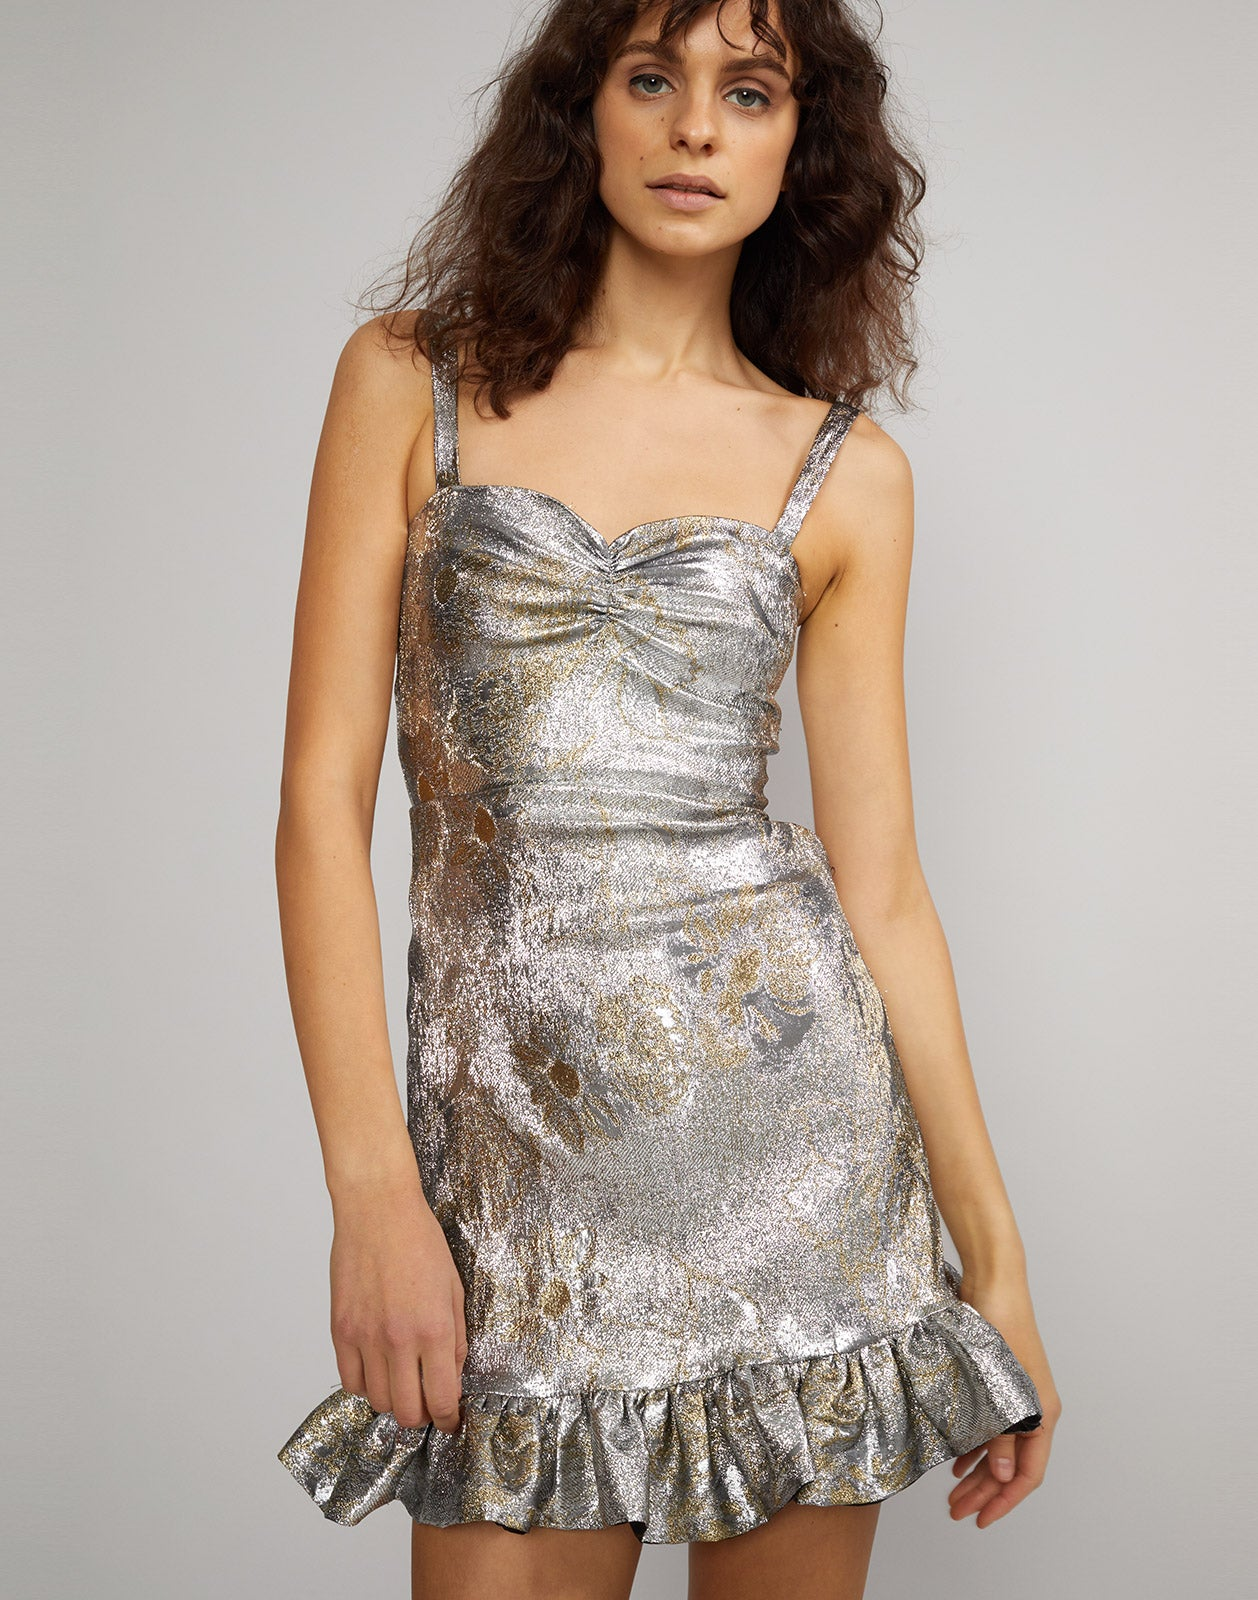 Front close up view of model wearing Gold Coast Metallic Brocade mini dress.